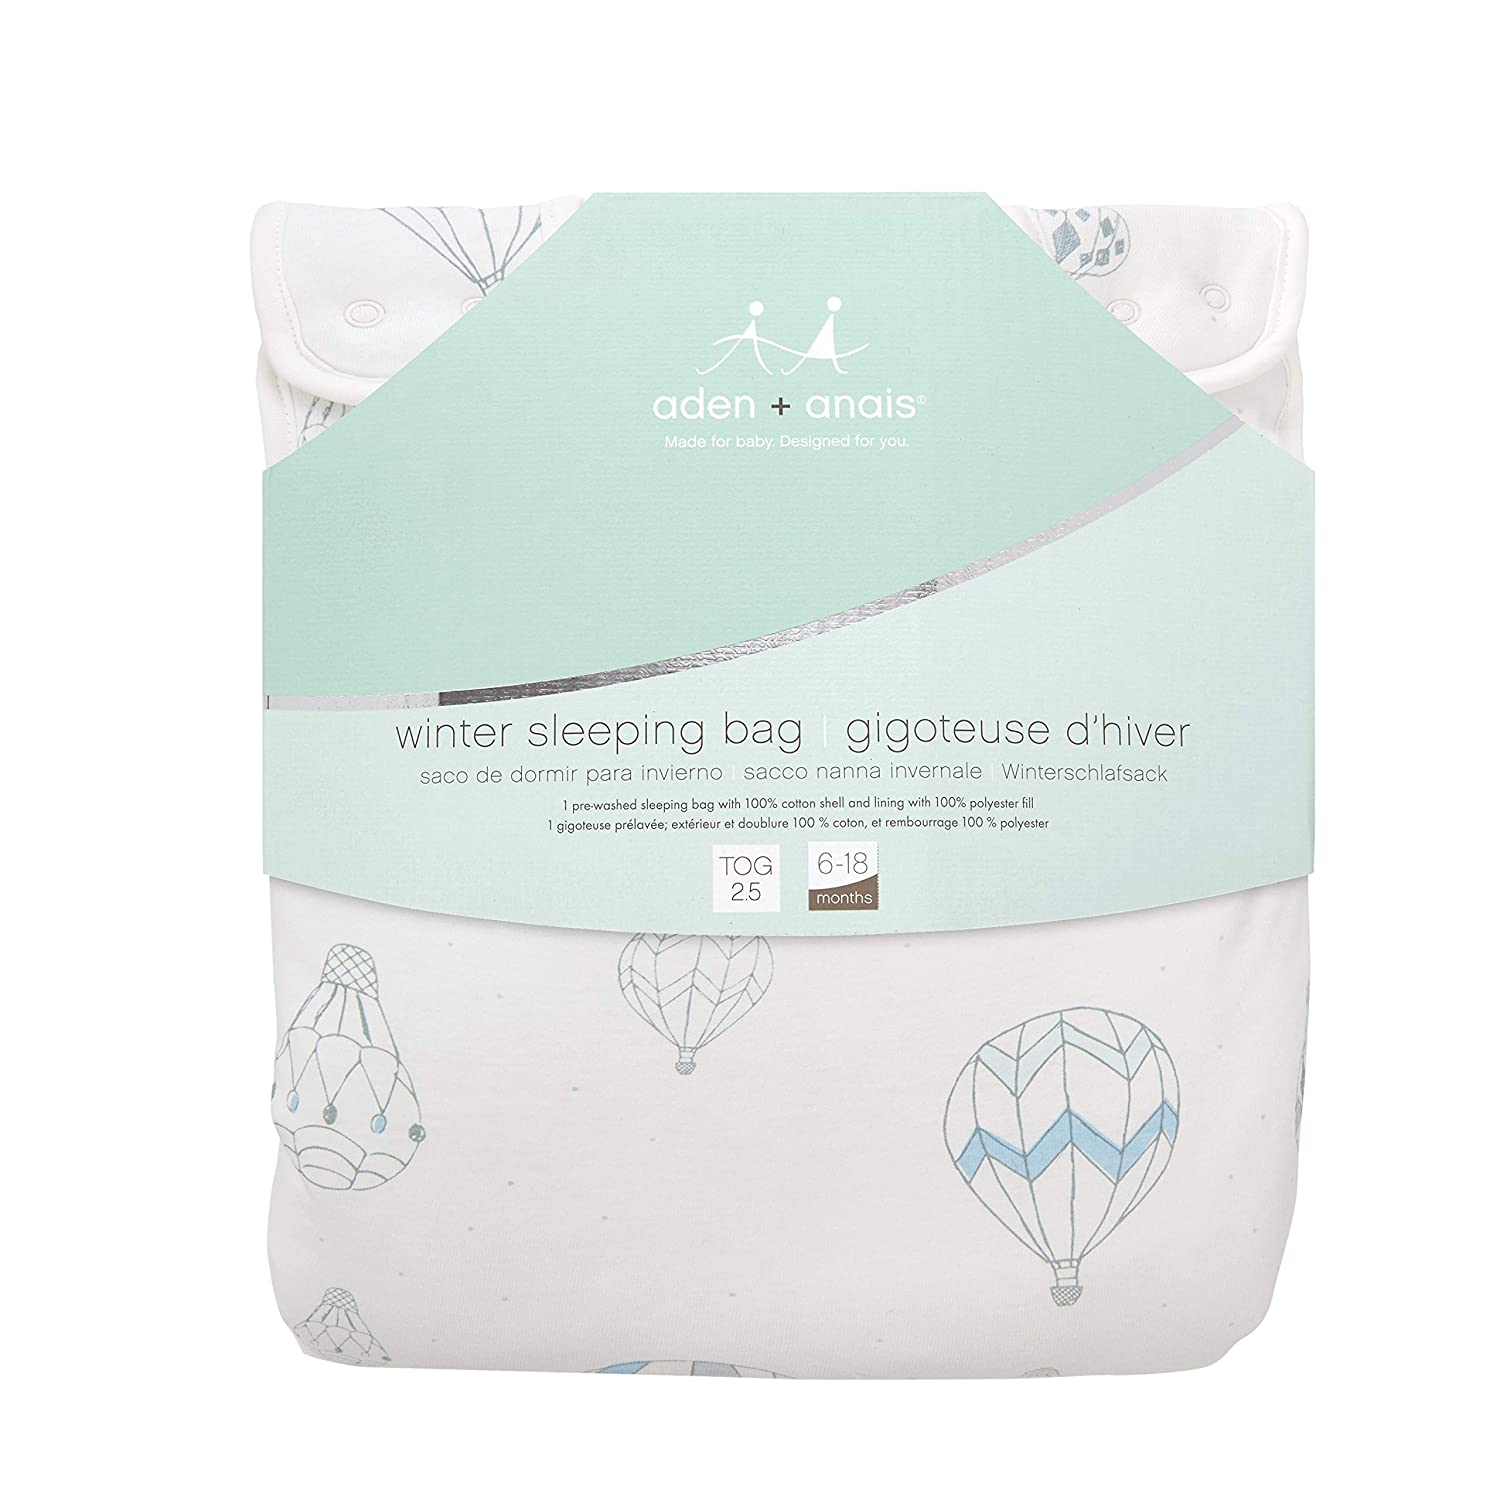 Amazon.com: aden + anais Winter Sleeping Bag - Night Sky Reverie Up - 6-18m: Baby